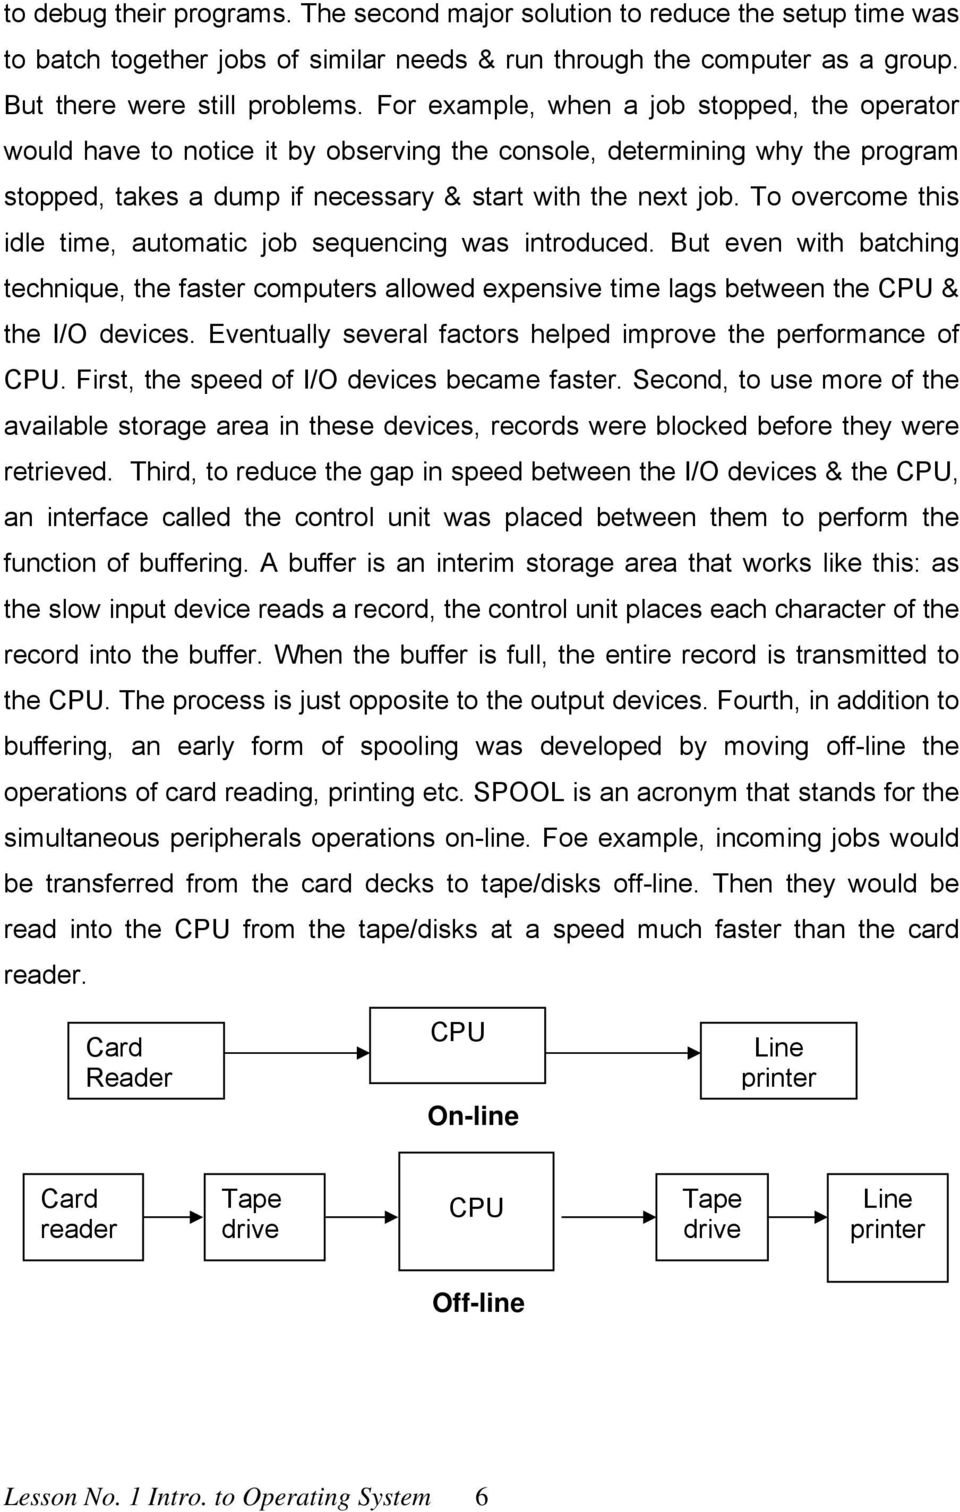 To overcome this idle time, automatic job sequencing was introduced. But even with batching technique, the faster computers allowed expensive time lags between the CPU & the I/O devices.